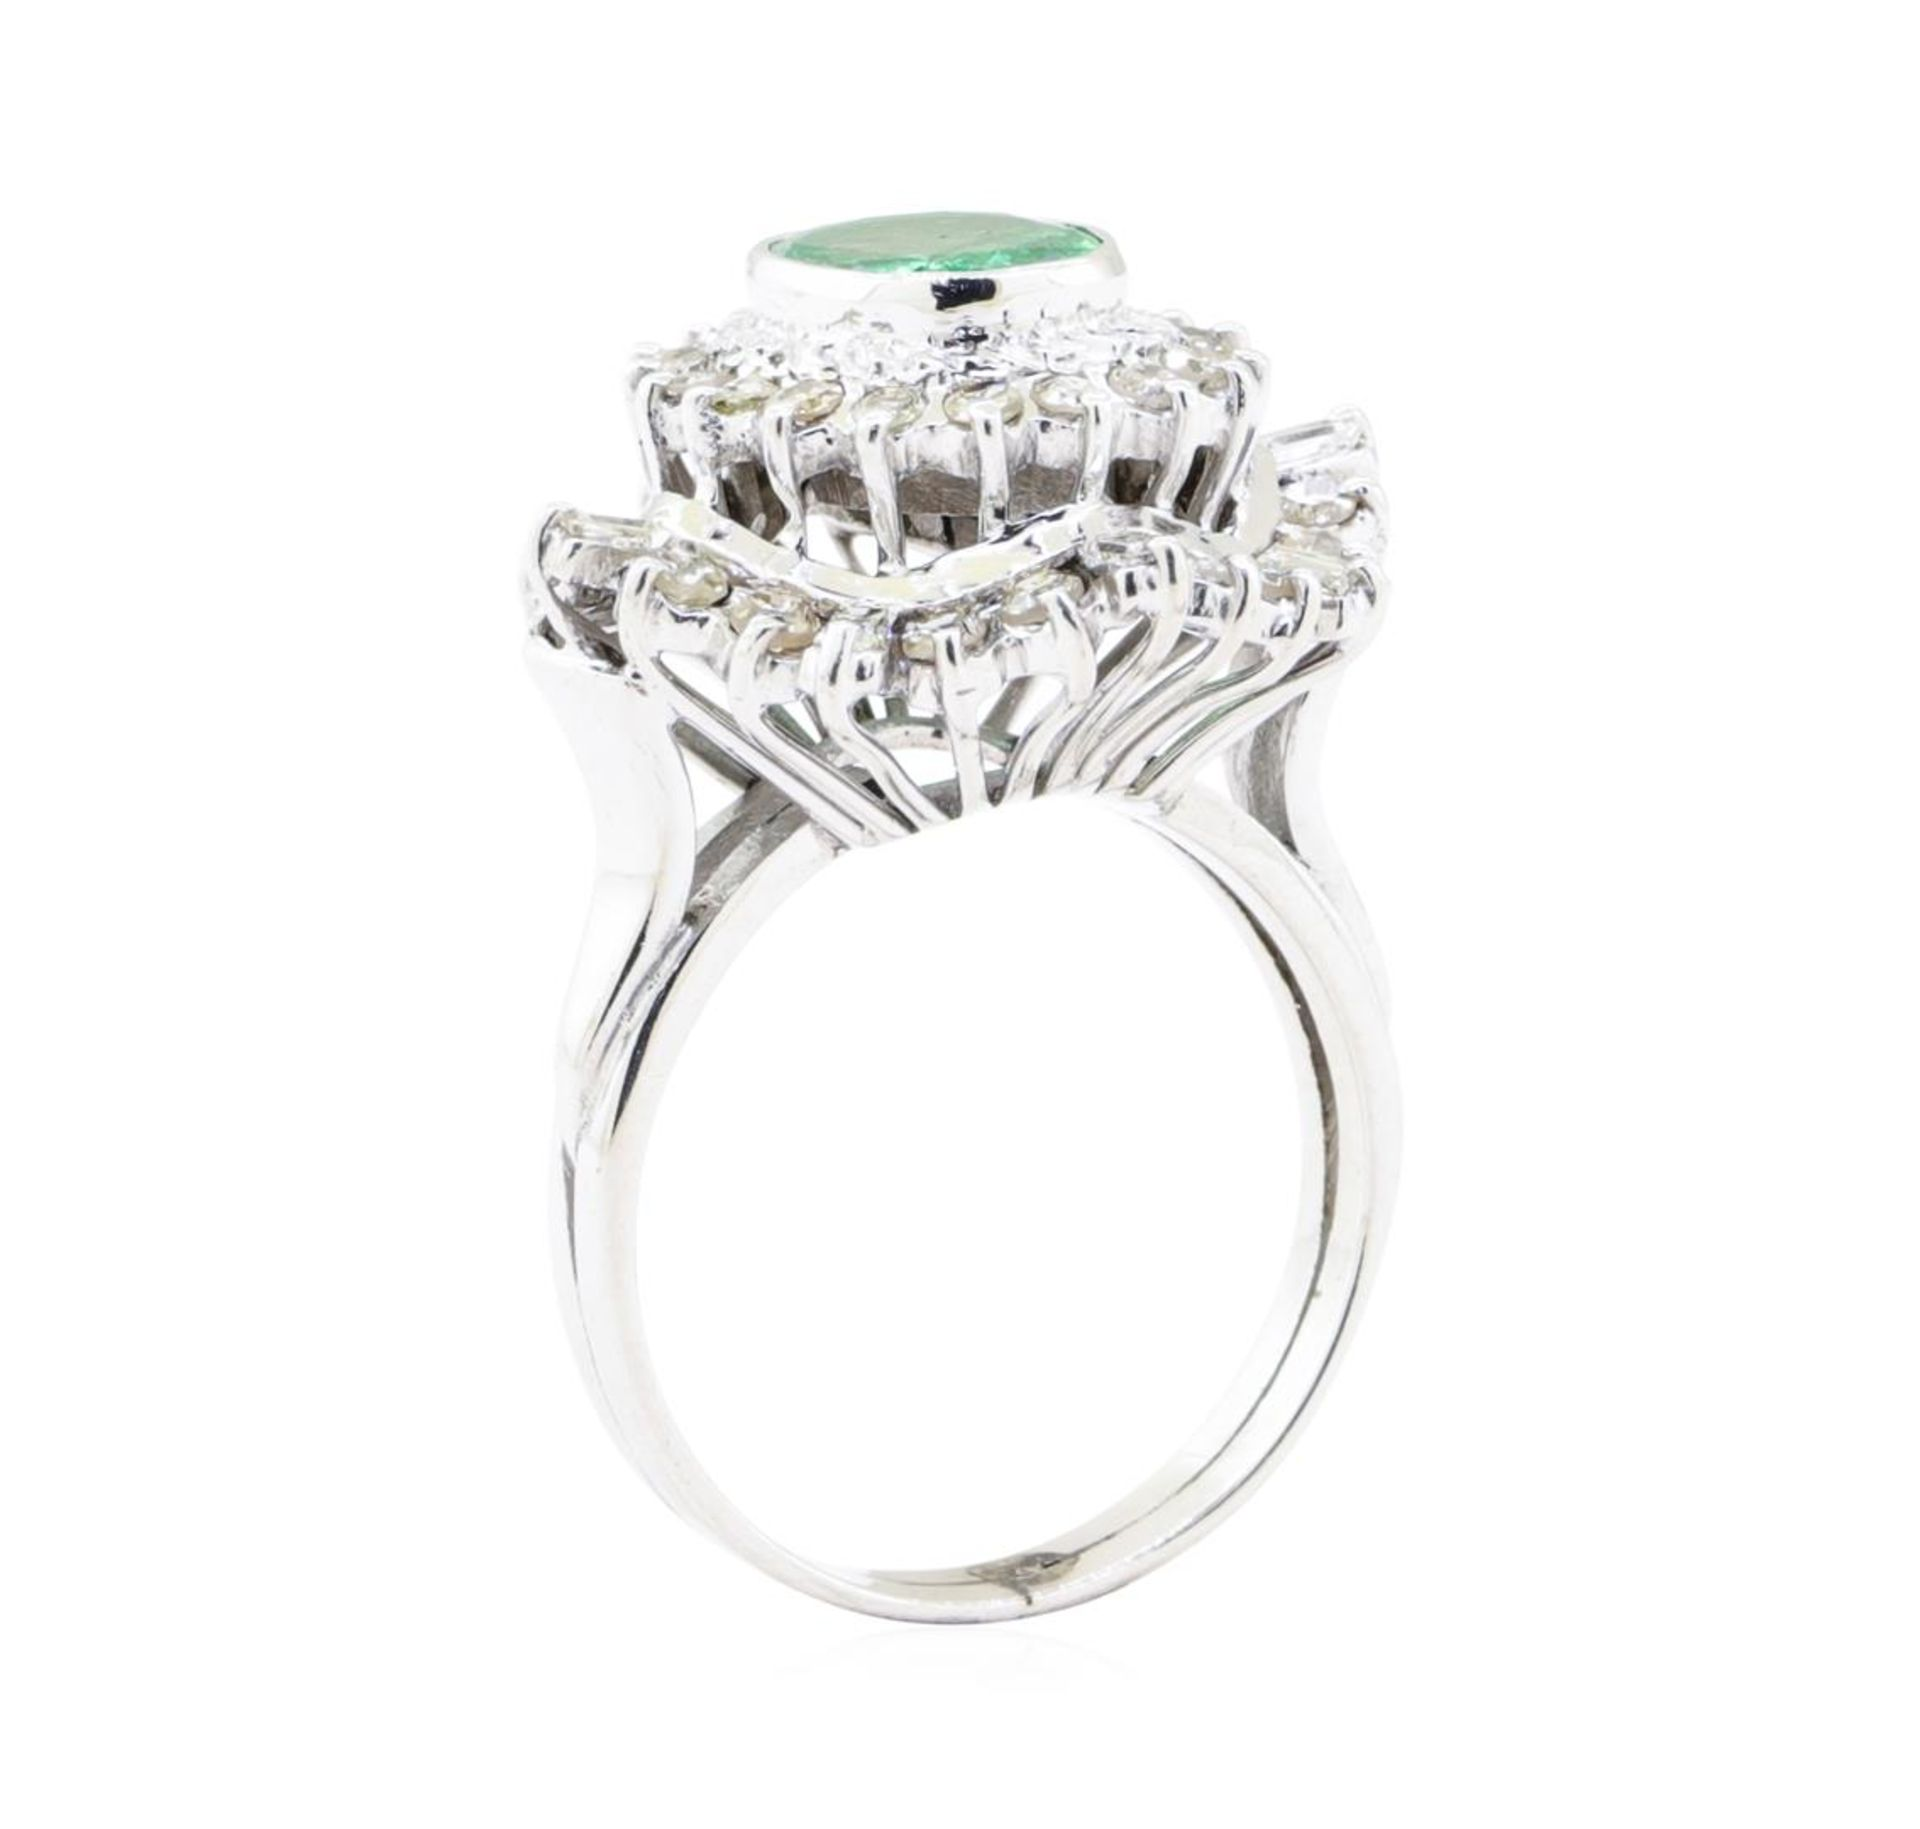 2.84 ctw Emerald And Diamond Double Halo Ring - 14KT White Gold - Image 4 of 5